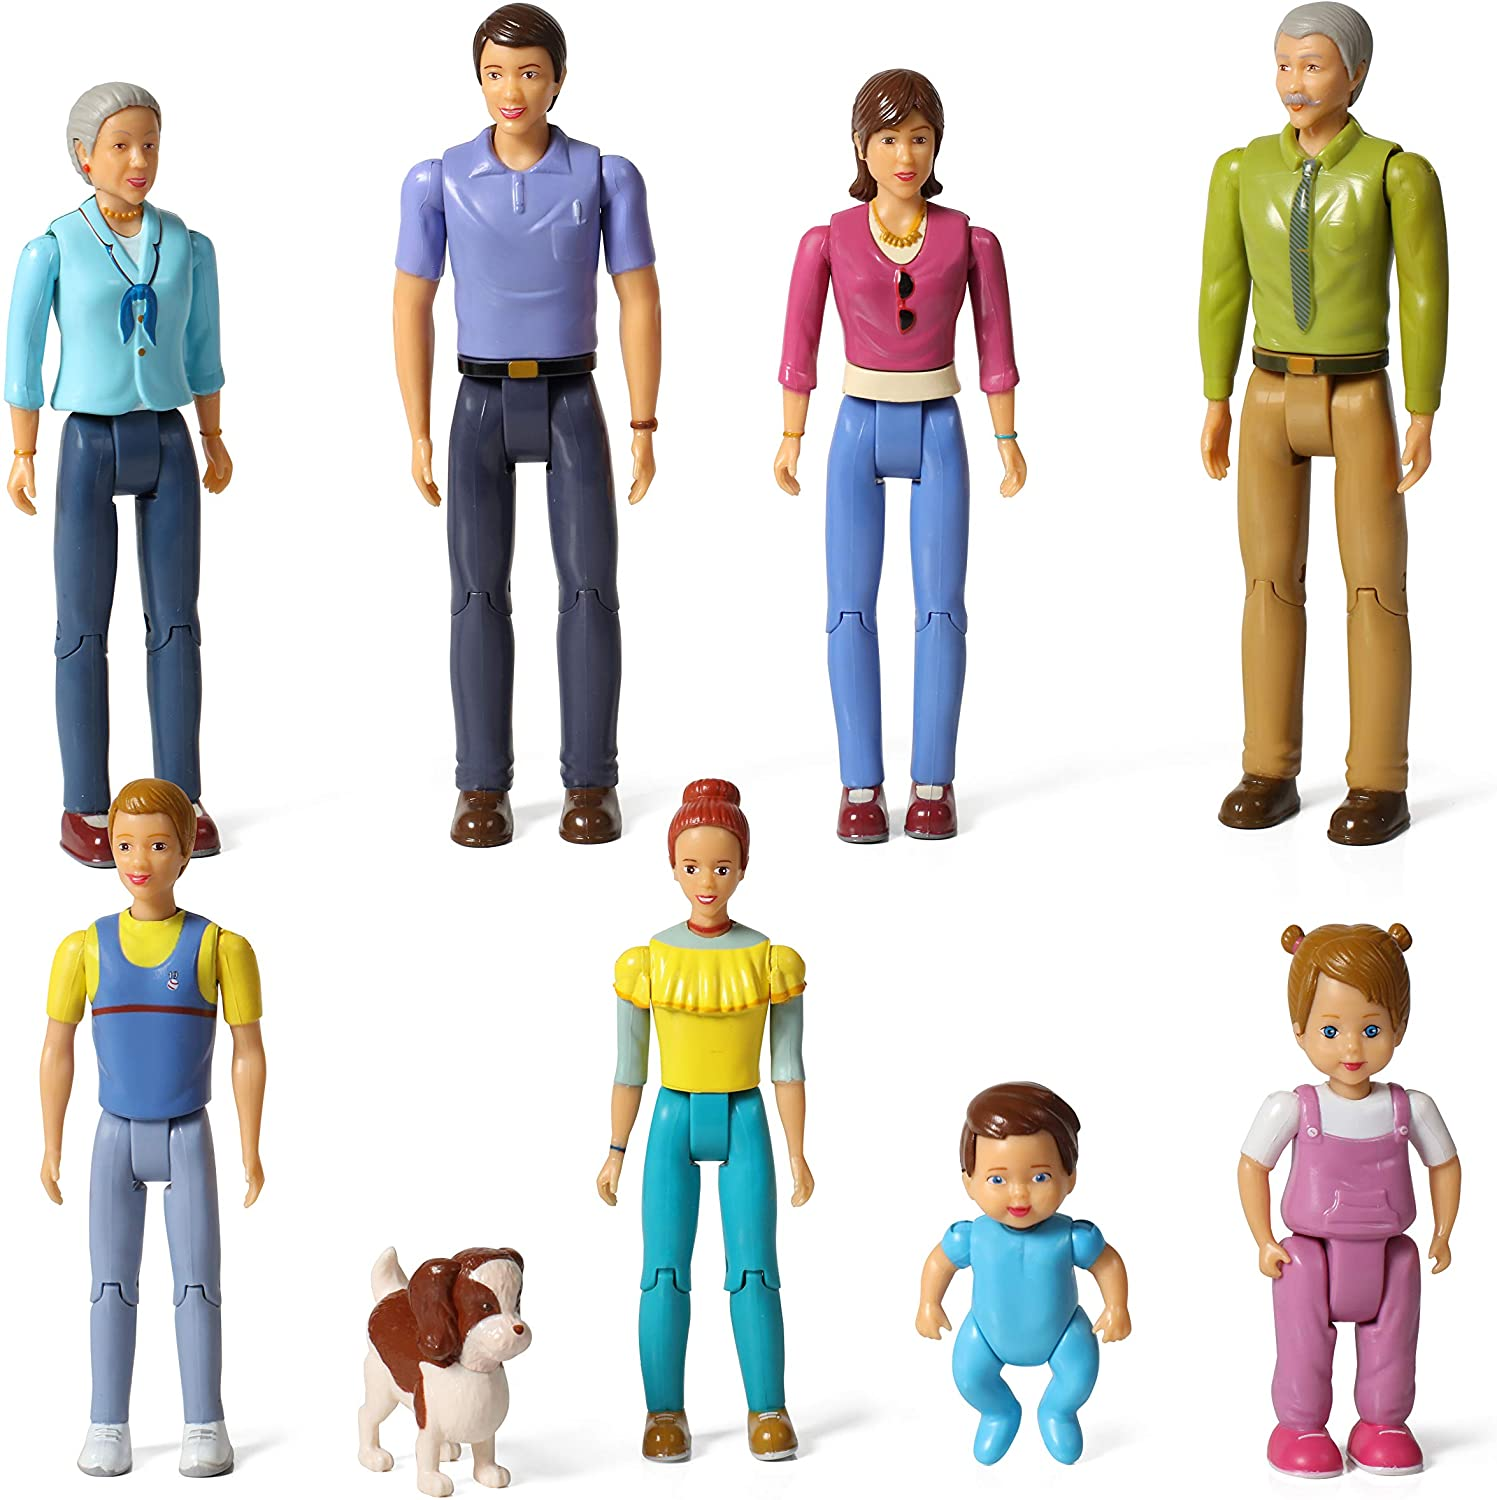 Beverly Hills Doll Collection Sweet Lil Family Friends Figures- New Addition Set of 9 Dollhouse People - Grandma, Grandpa, Mom, Dad, Sister, Brother, Toddler, Baby and Dog